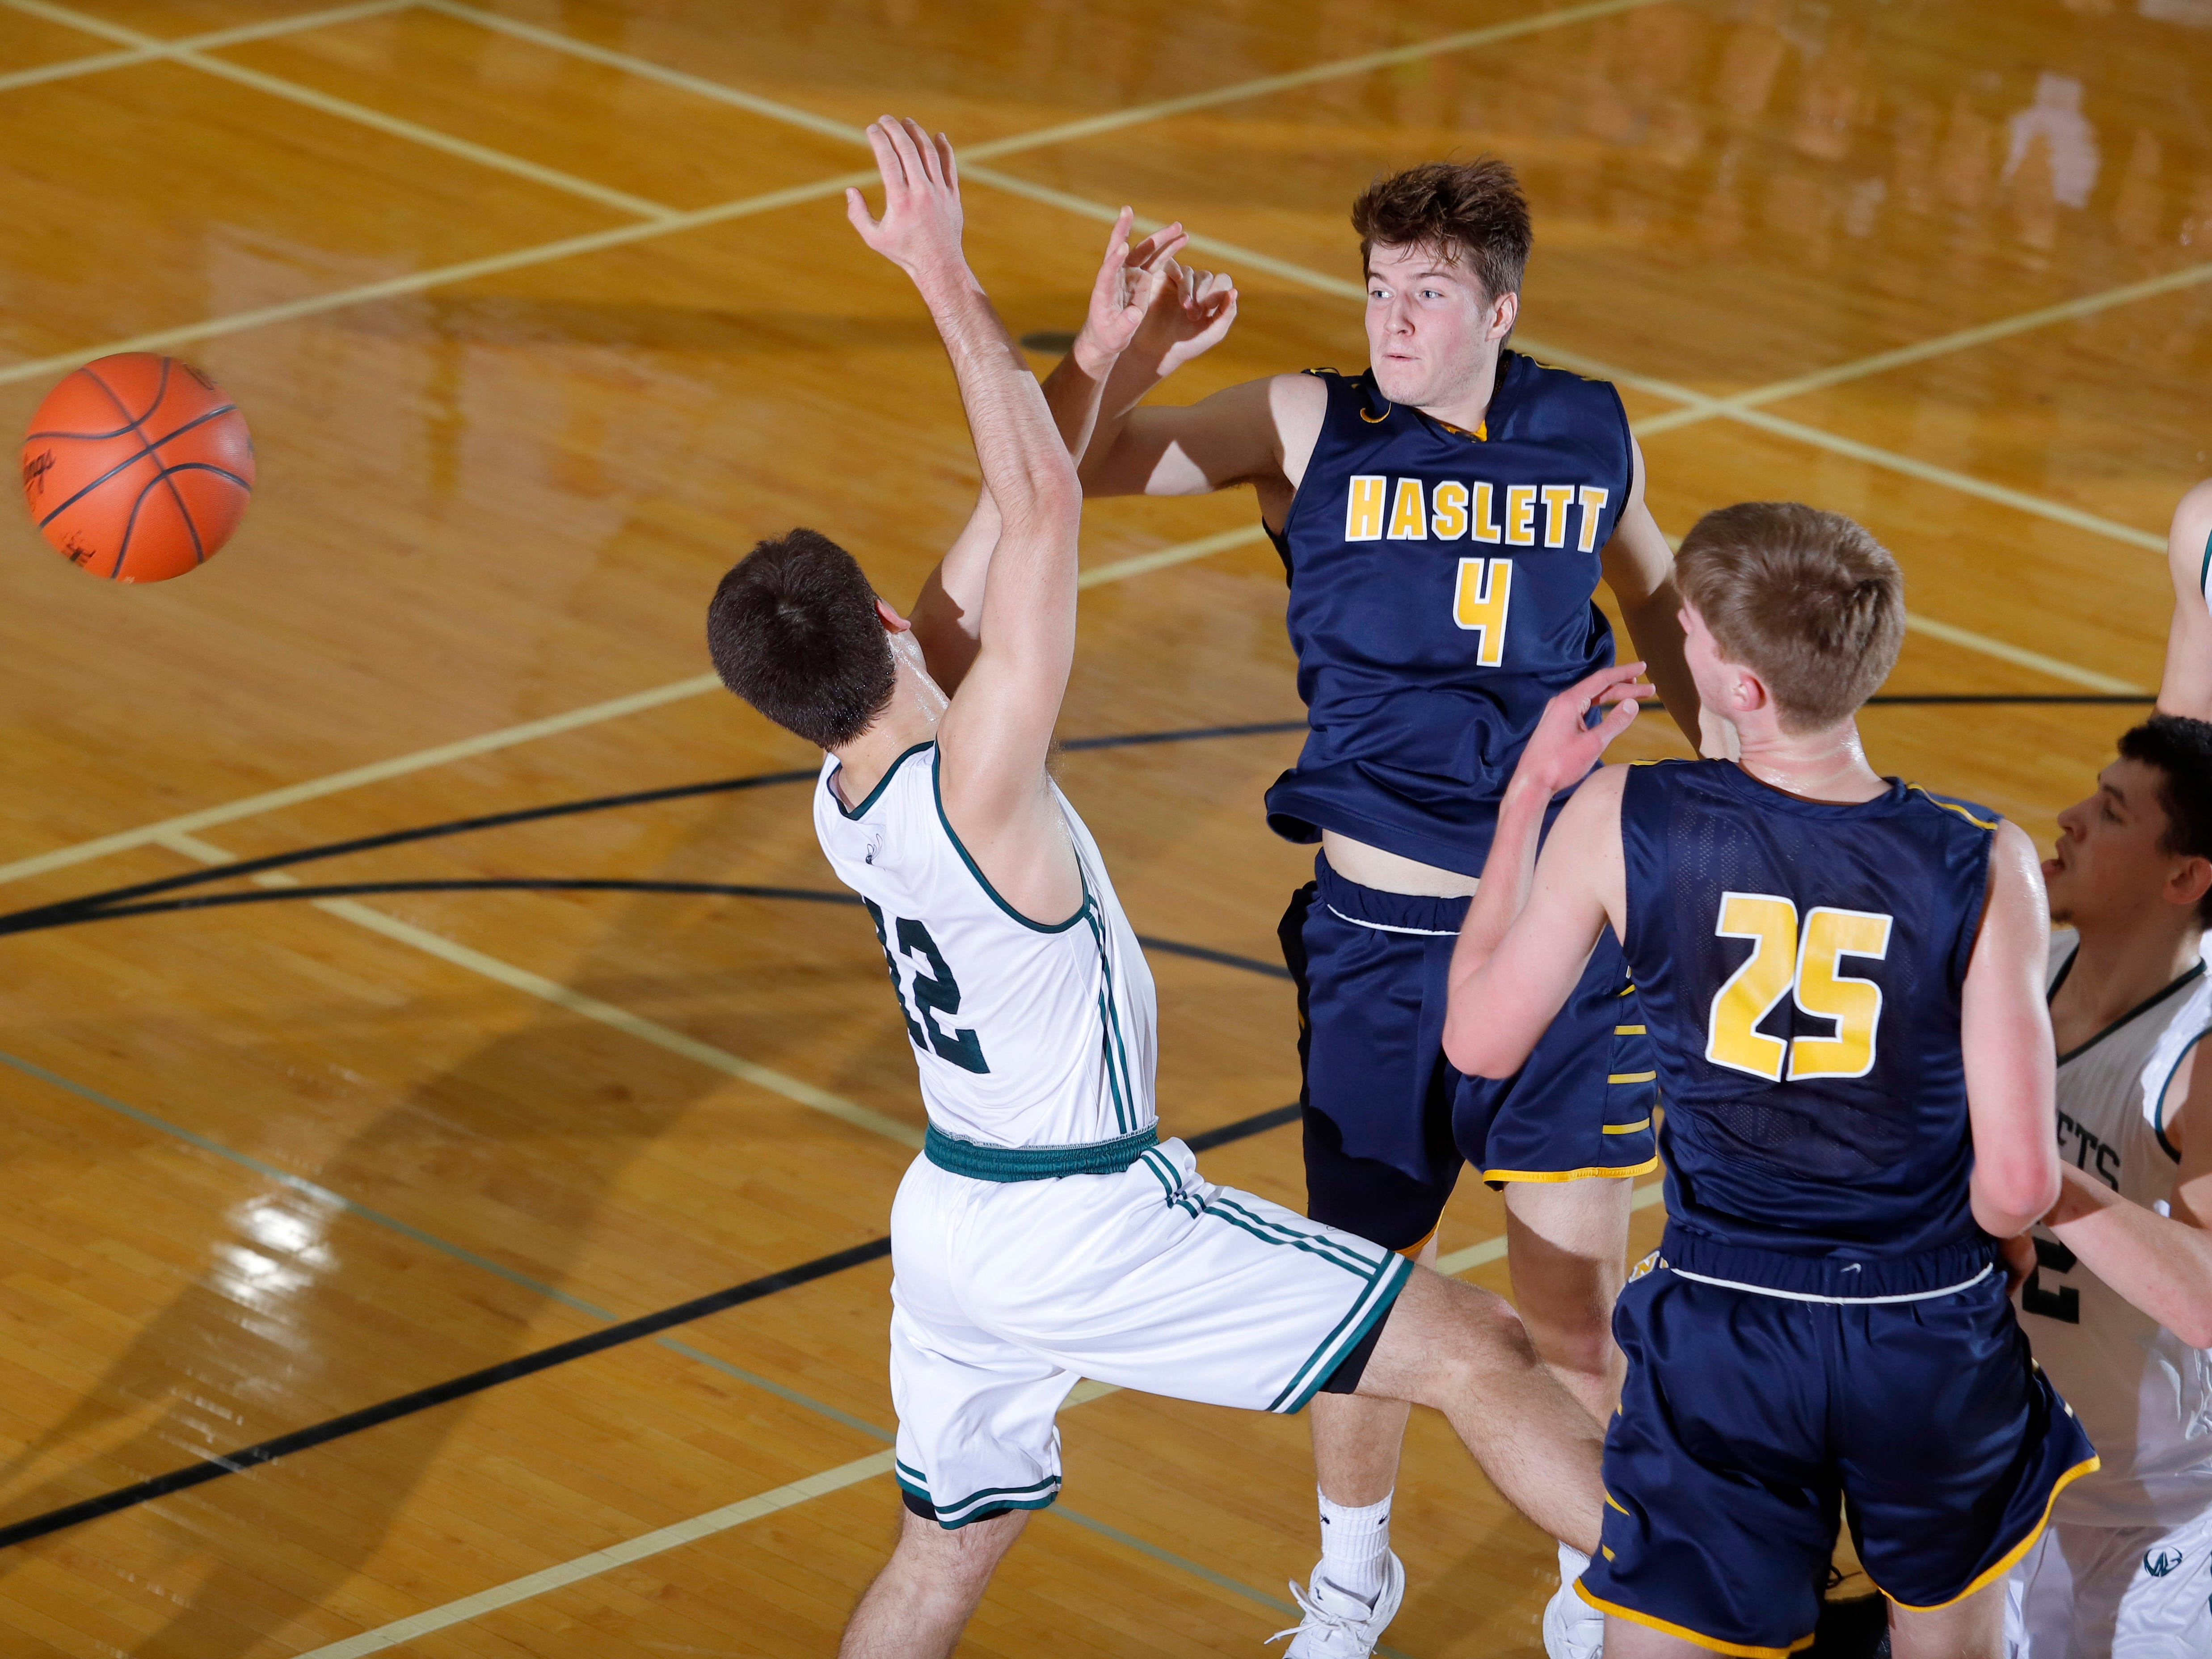 Williamston's Mitchell Cook, left, and Sean Cobb, right, and Haslett's Jaden Thelen (4) and Andrew Alchin (25) vie for a rebound, Friday, Jan. 11, 2019, in Williamston, Mich.